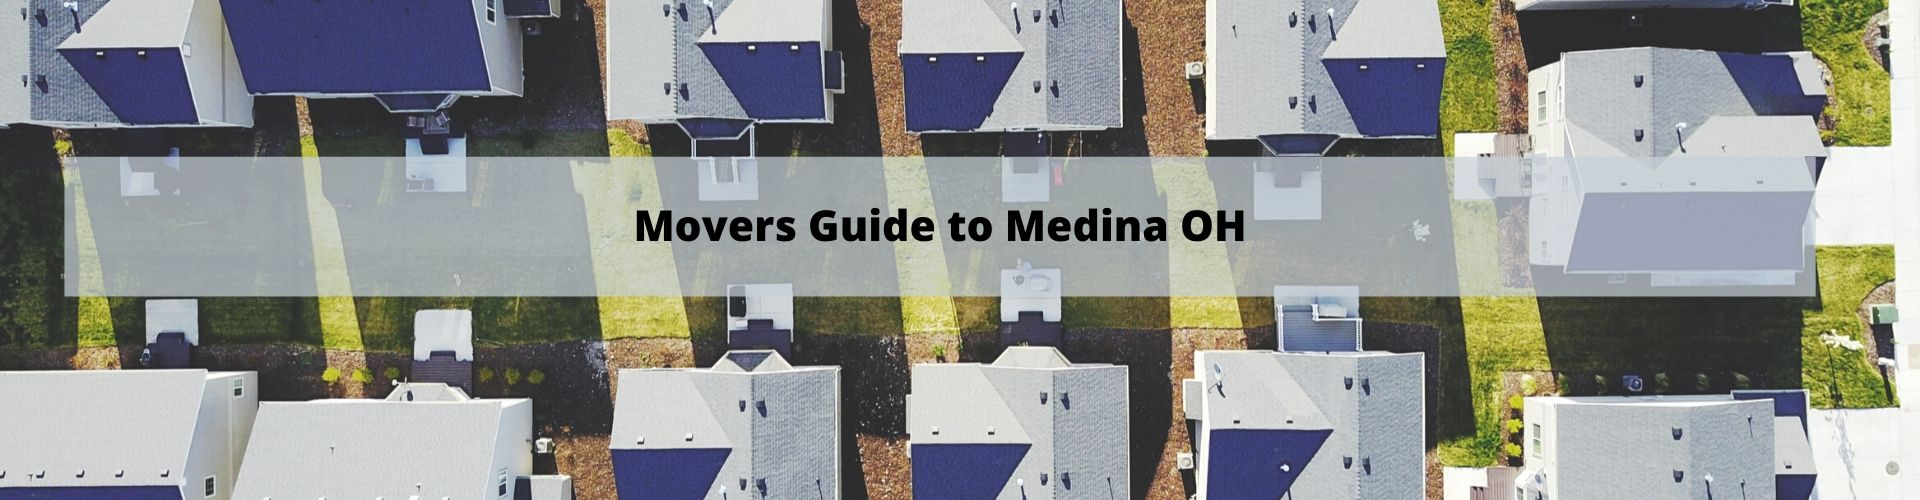 Mover's Guide to Medina OH